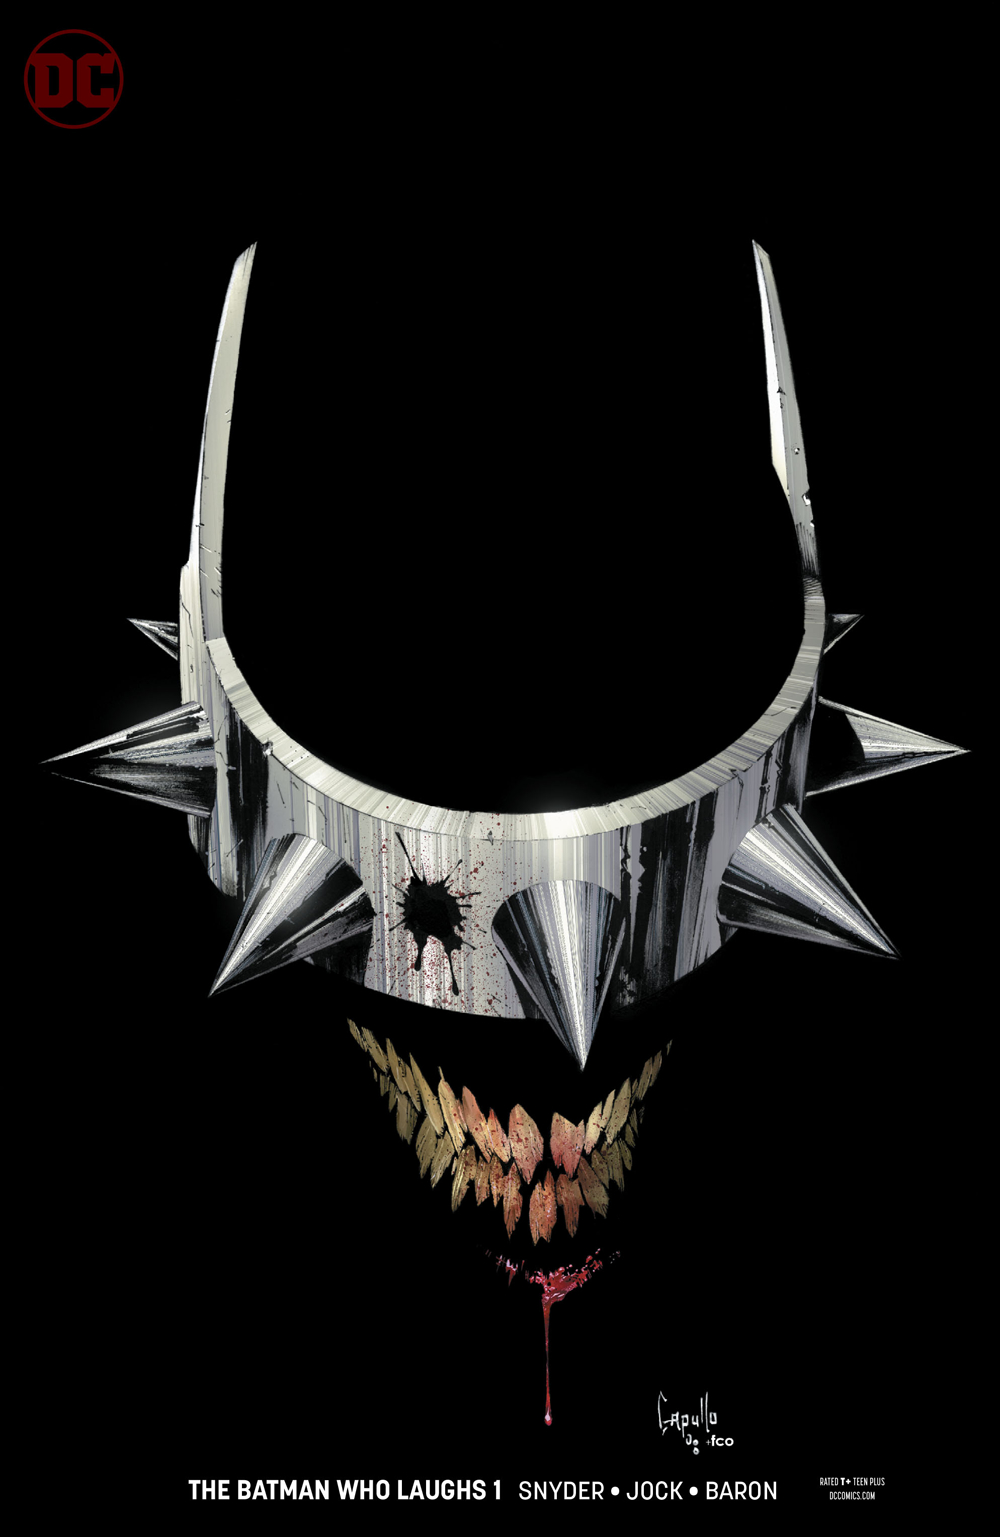 The Batman Who Laughs is back, and he brought a new Nightmare Batman